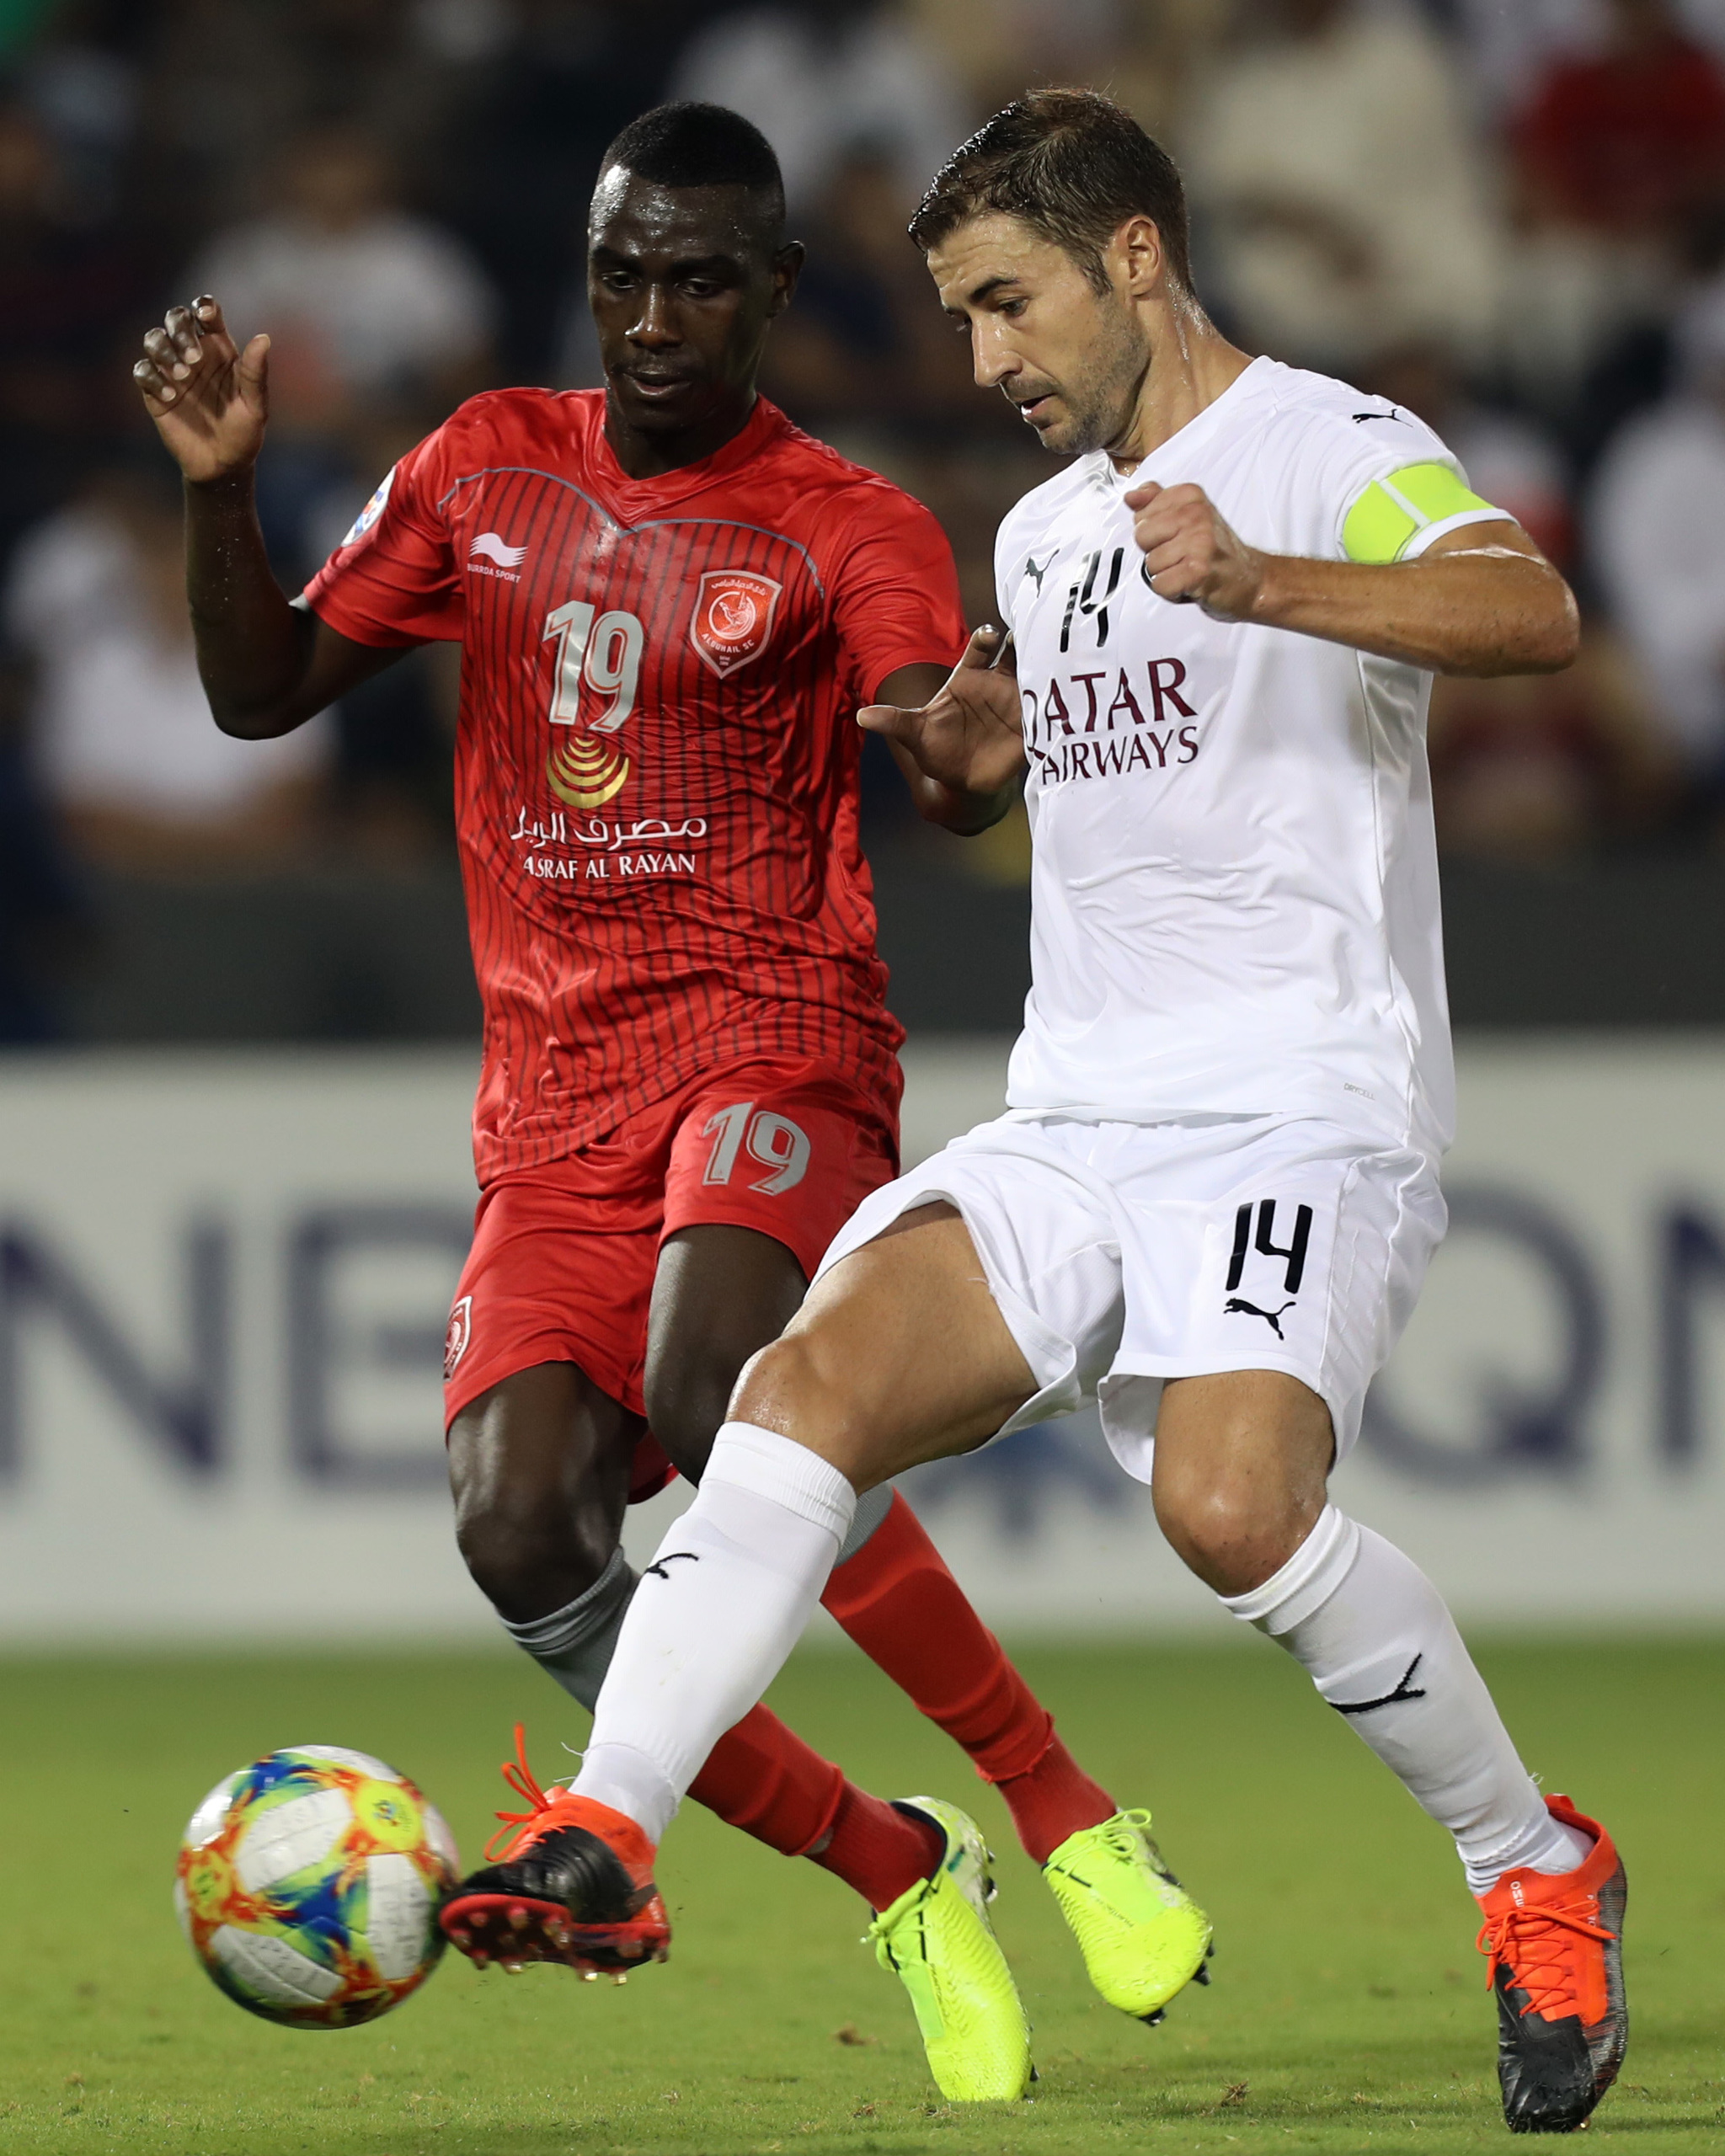 Sadd SCs Spanish midfielder <HIT>Gabi</HIT> (R) and Duhail SCs Qatari forward Almoez Ali vie for the ball during the AFC Champions League round of 16 second leg football match between Qatars al-Sadd and Qatars al-Duhail at Jassim bin Hamad stadium in Doha on August 13, 2019. (Photo by KARIM JAAFAR / AFP)